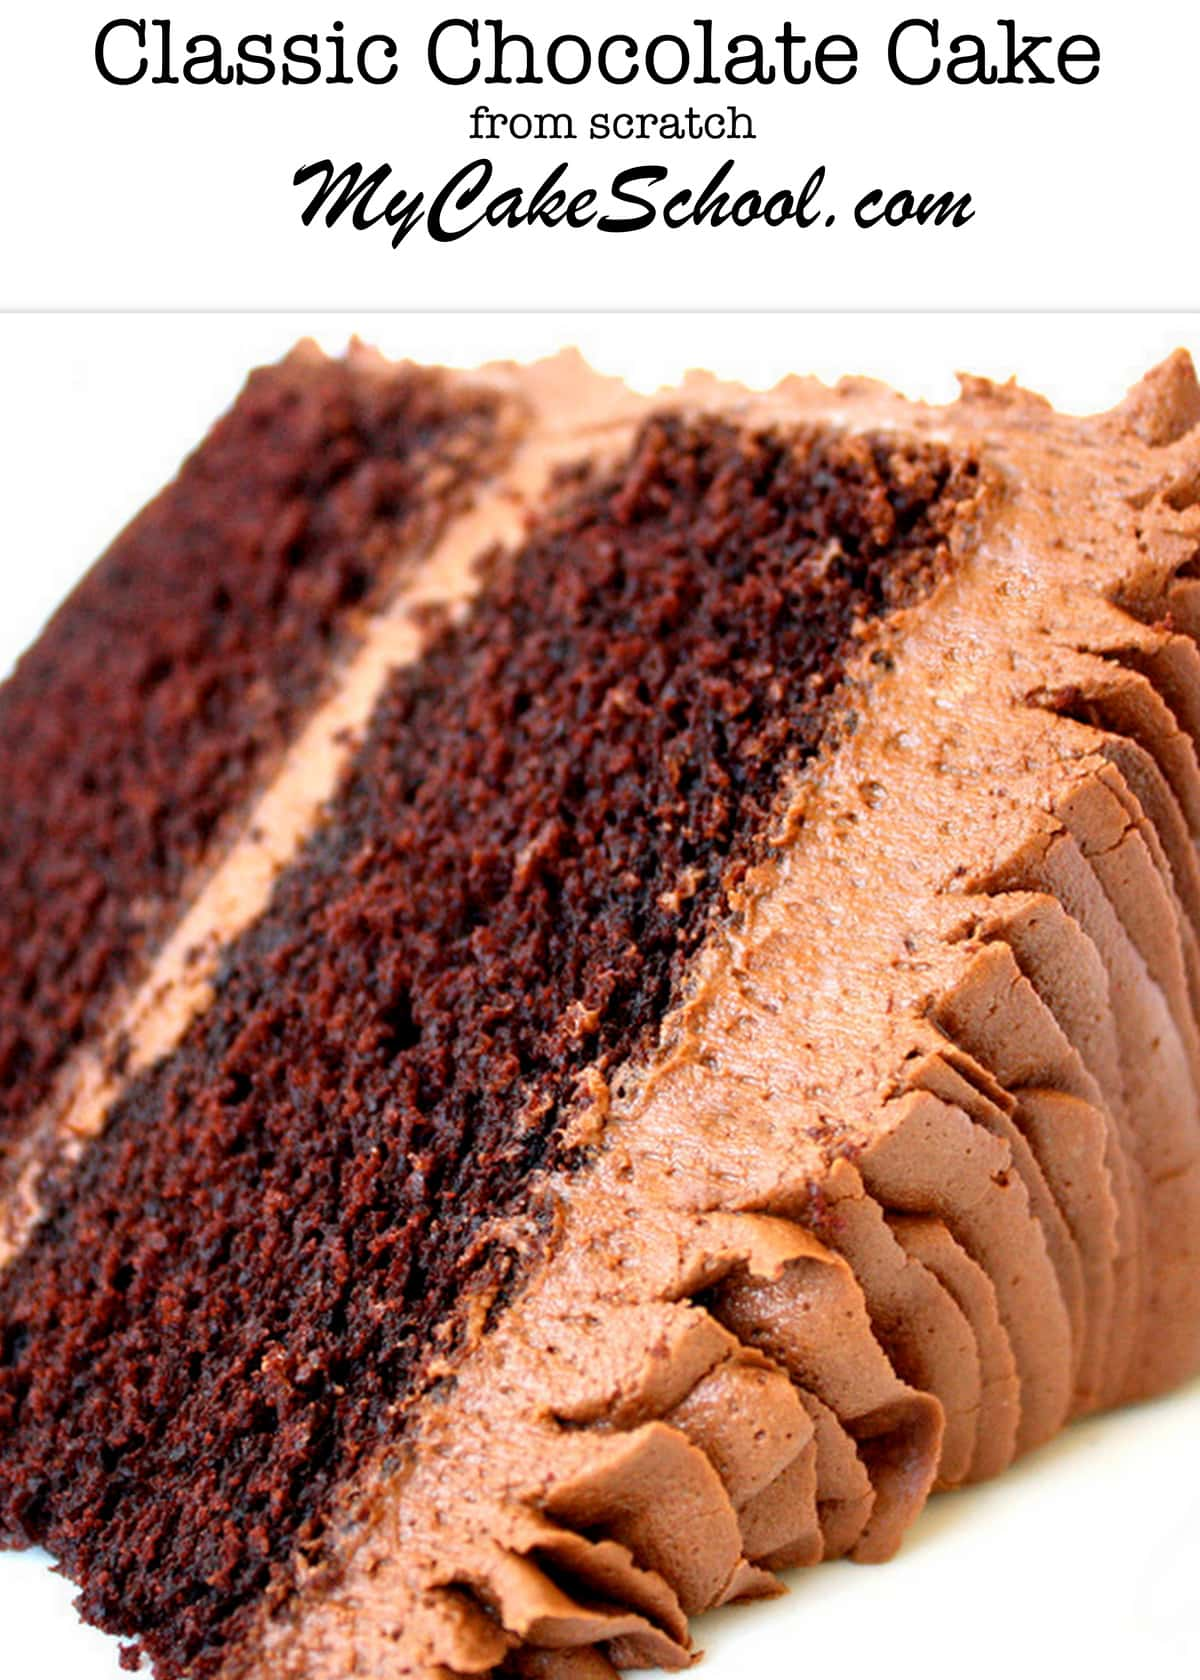 Decadent Classic Chocolate Cake from Scratch! This amazingly moist and delicious homemade chocolate cake is one of our most popular! My Cake School Online Cake Classes, Cake Recipes, and more.